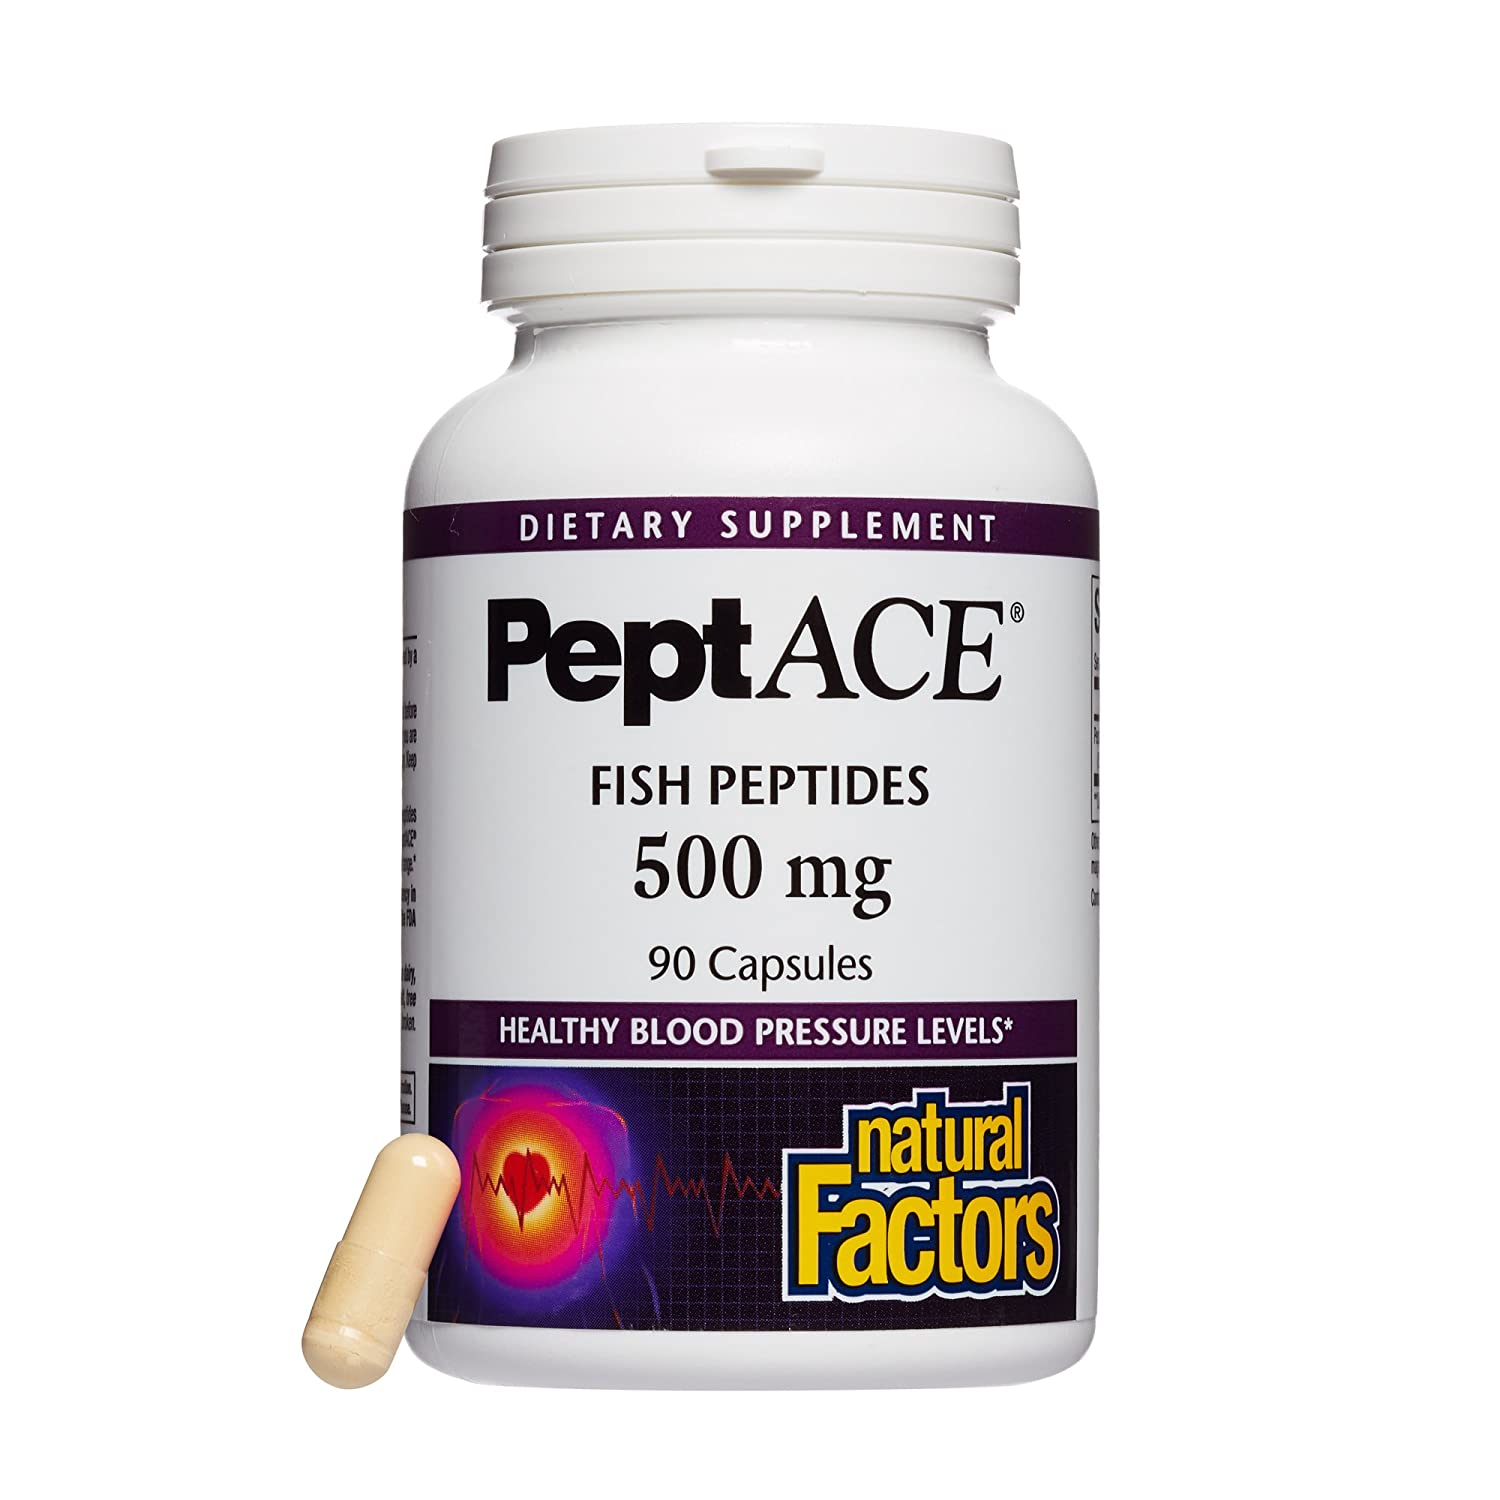 Natural Factors, PeptACE Fish Peptides, Cardiovascular Support for Healthy Blood Pressure Levels Already within the Normal Range, Gluten Free, 90 capsules (90 servings)